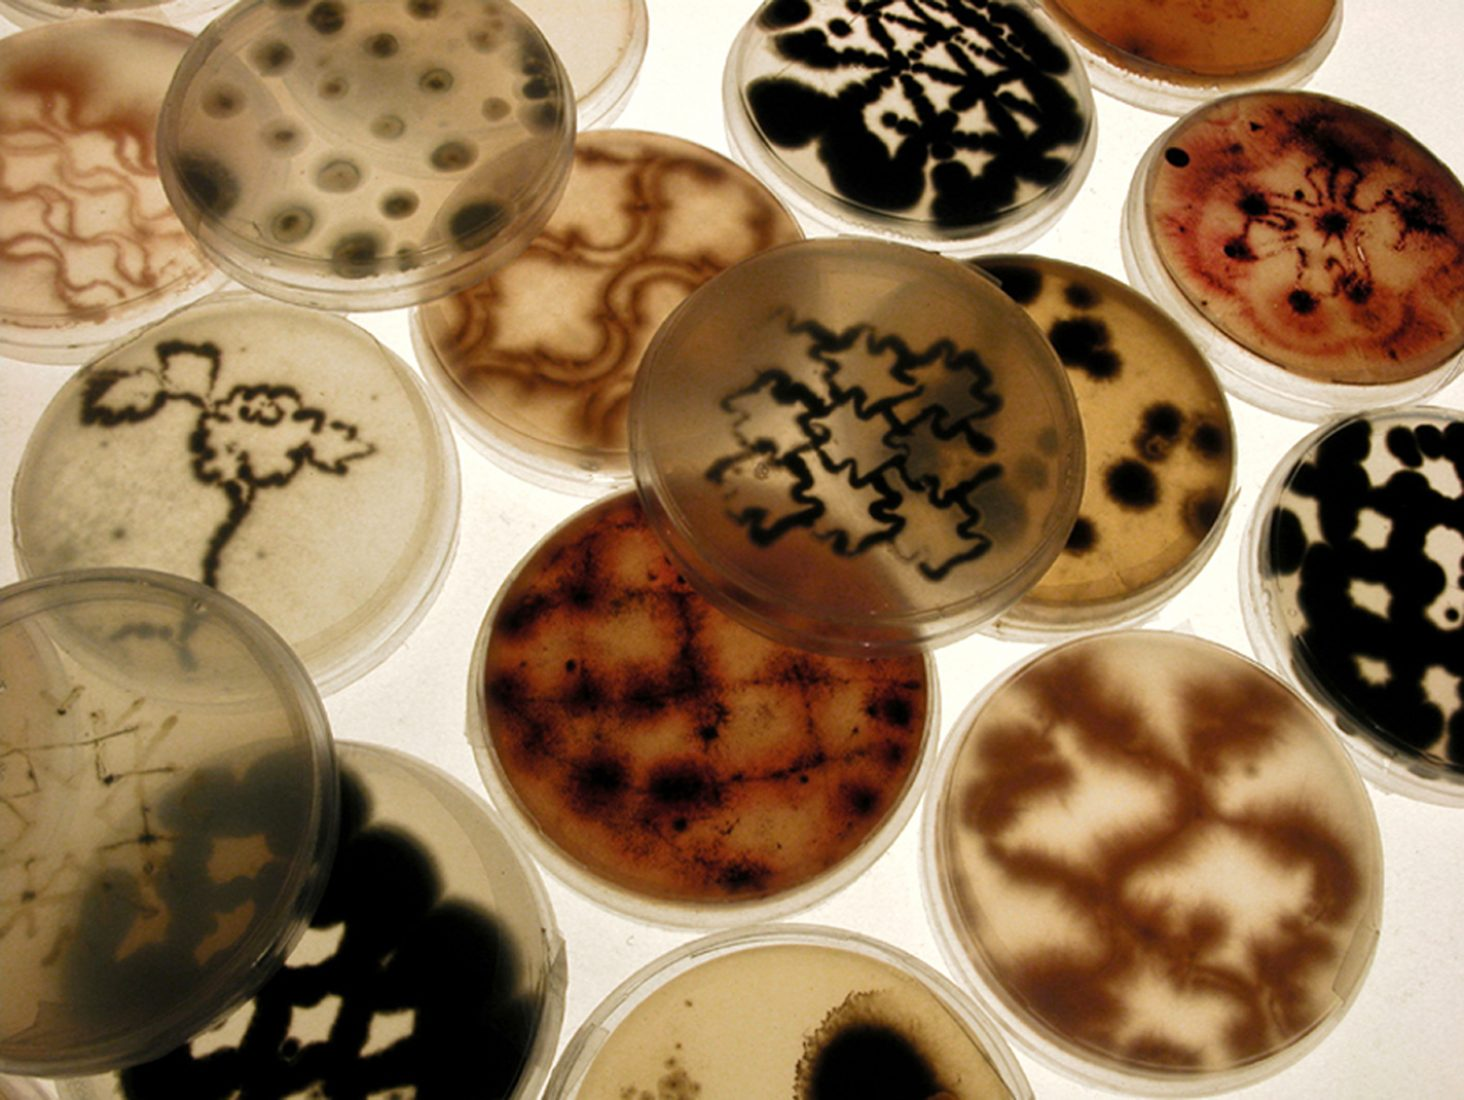 Drawings on agar petri dishes with mold and bacteria